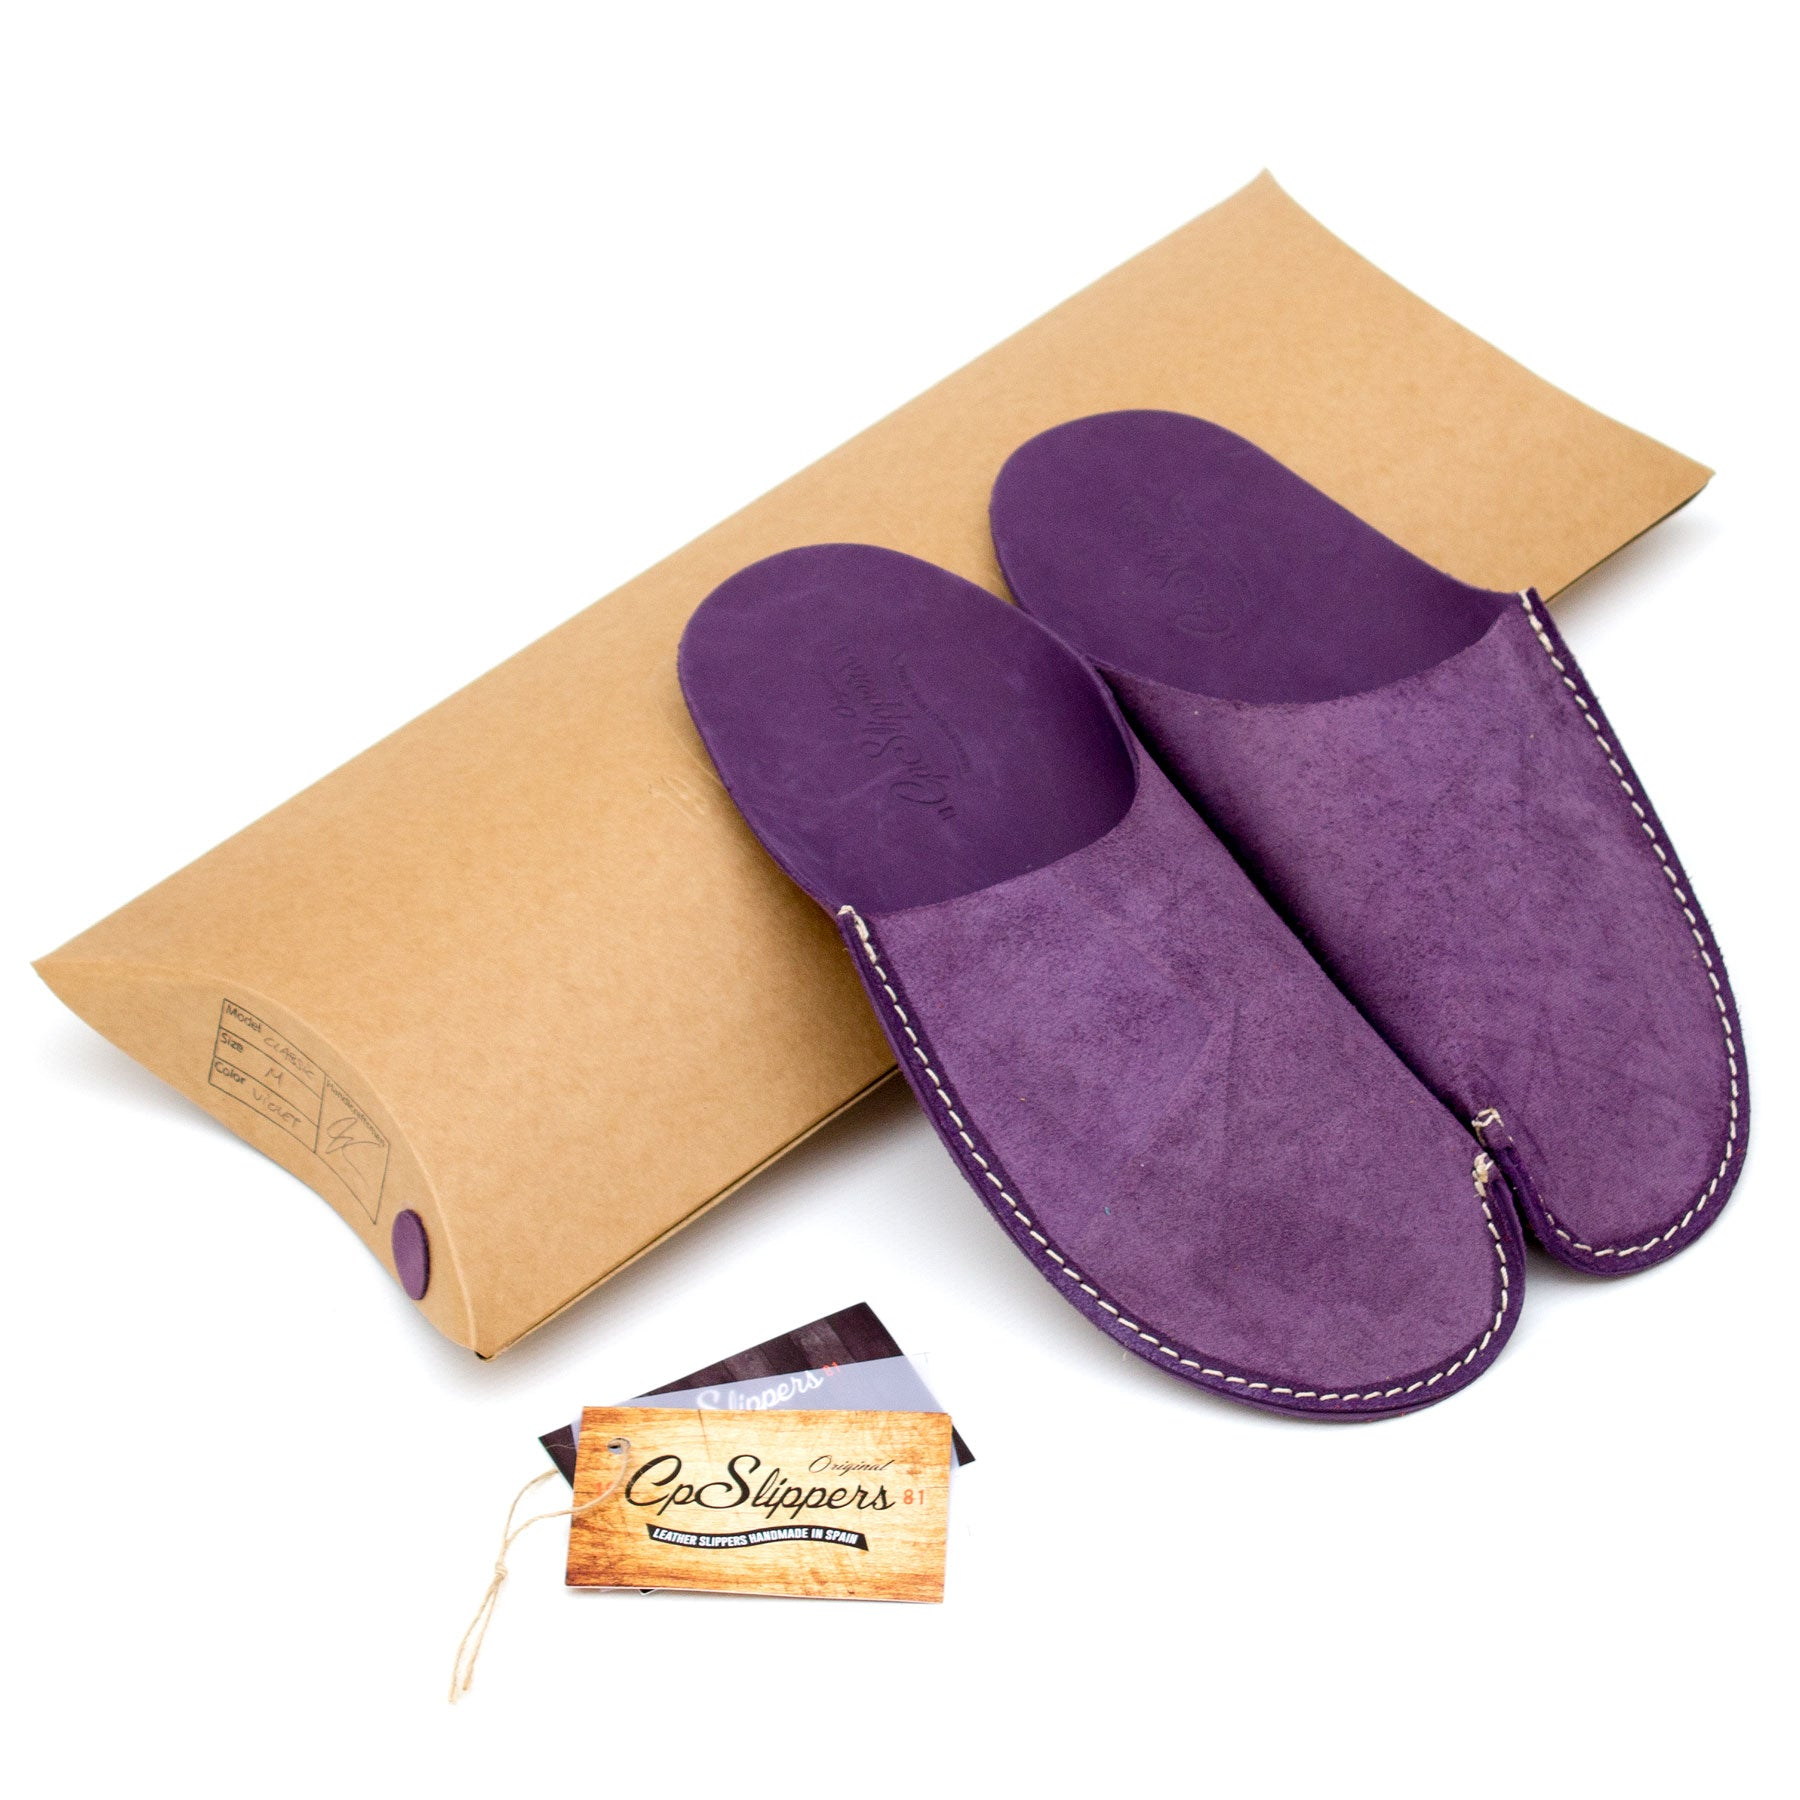 Violet CP Slippers Minimalist slippers for man and woman